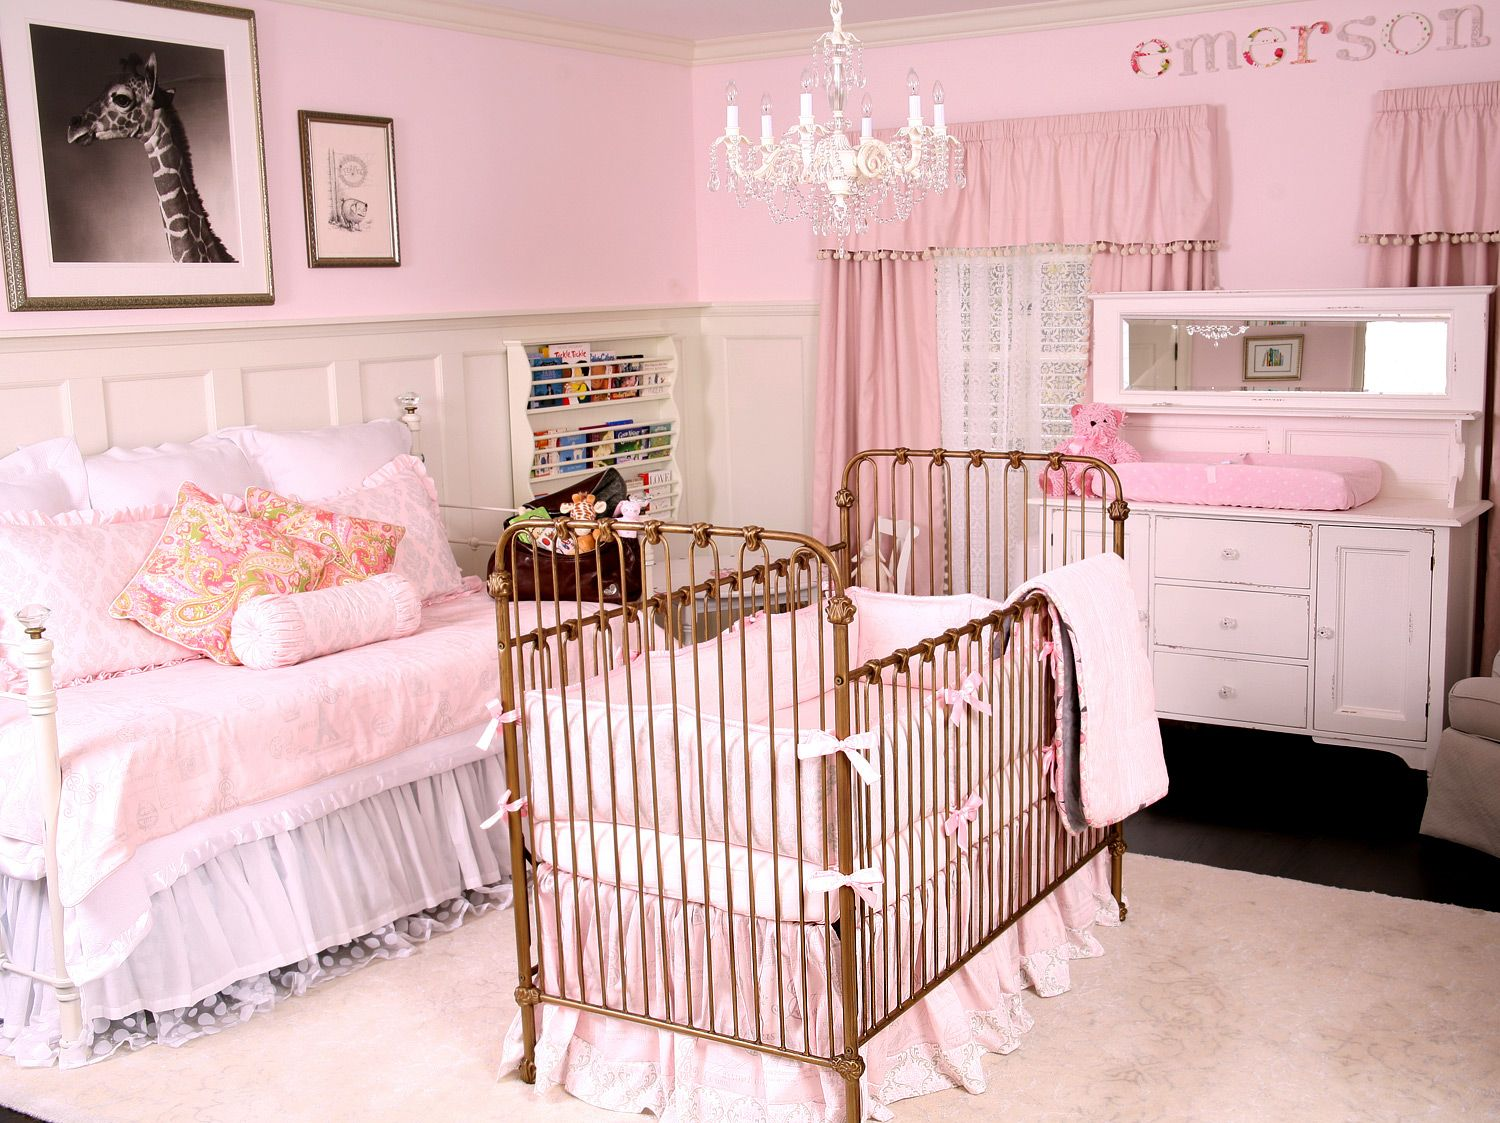 Greys Anatomys Shonda Rhimes Adopts See Her Babys Nursery - Light pink nursery decor